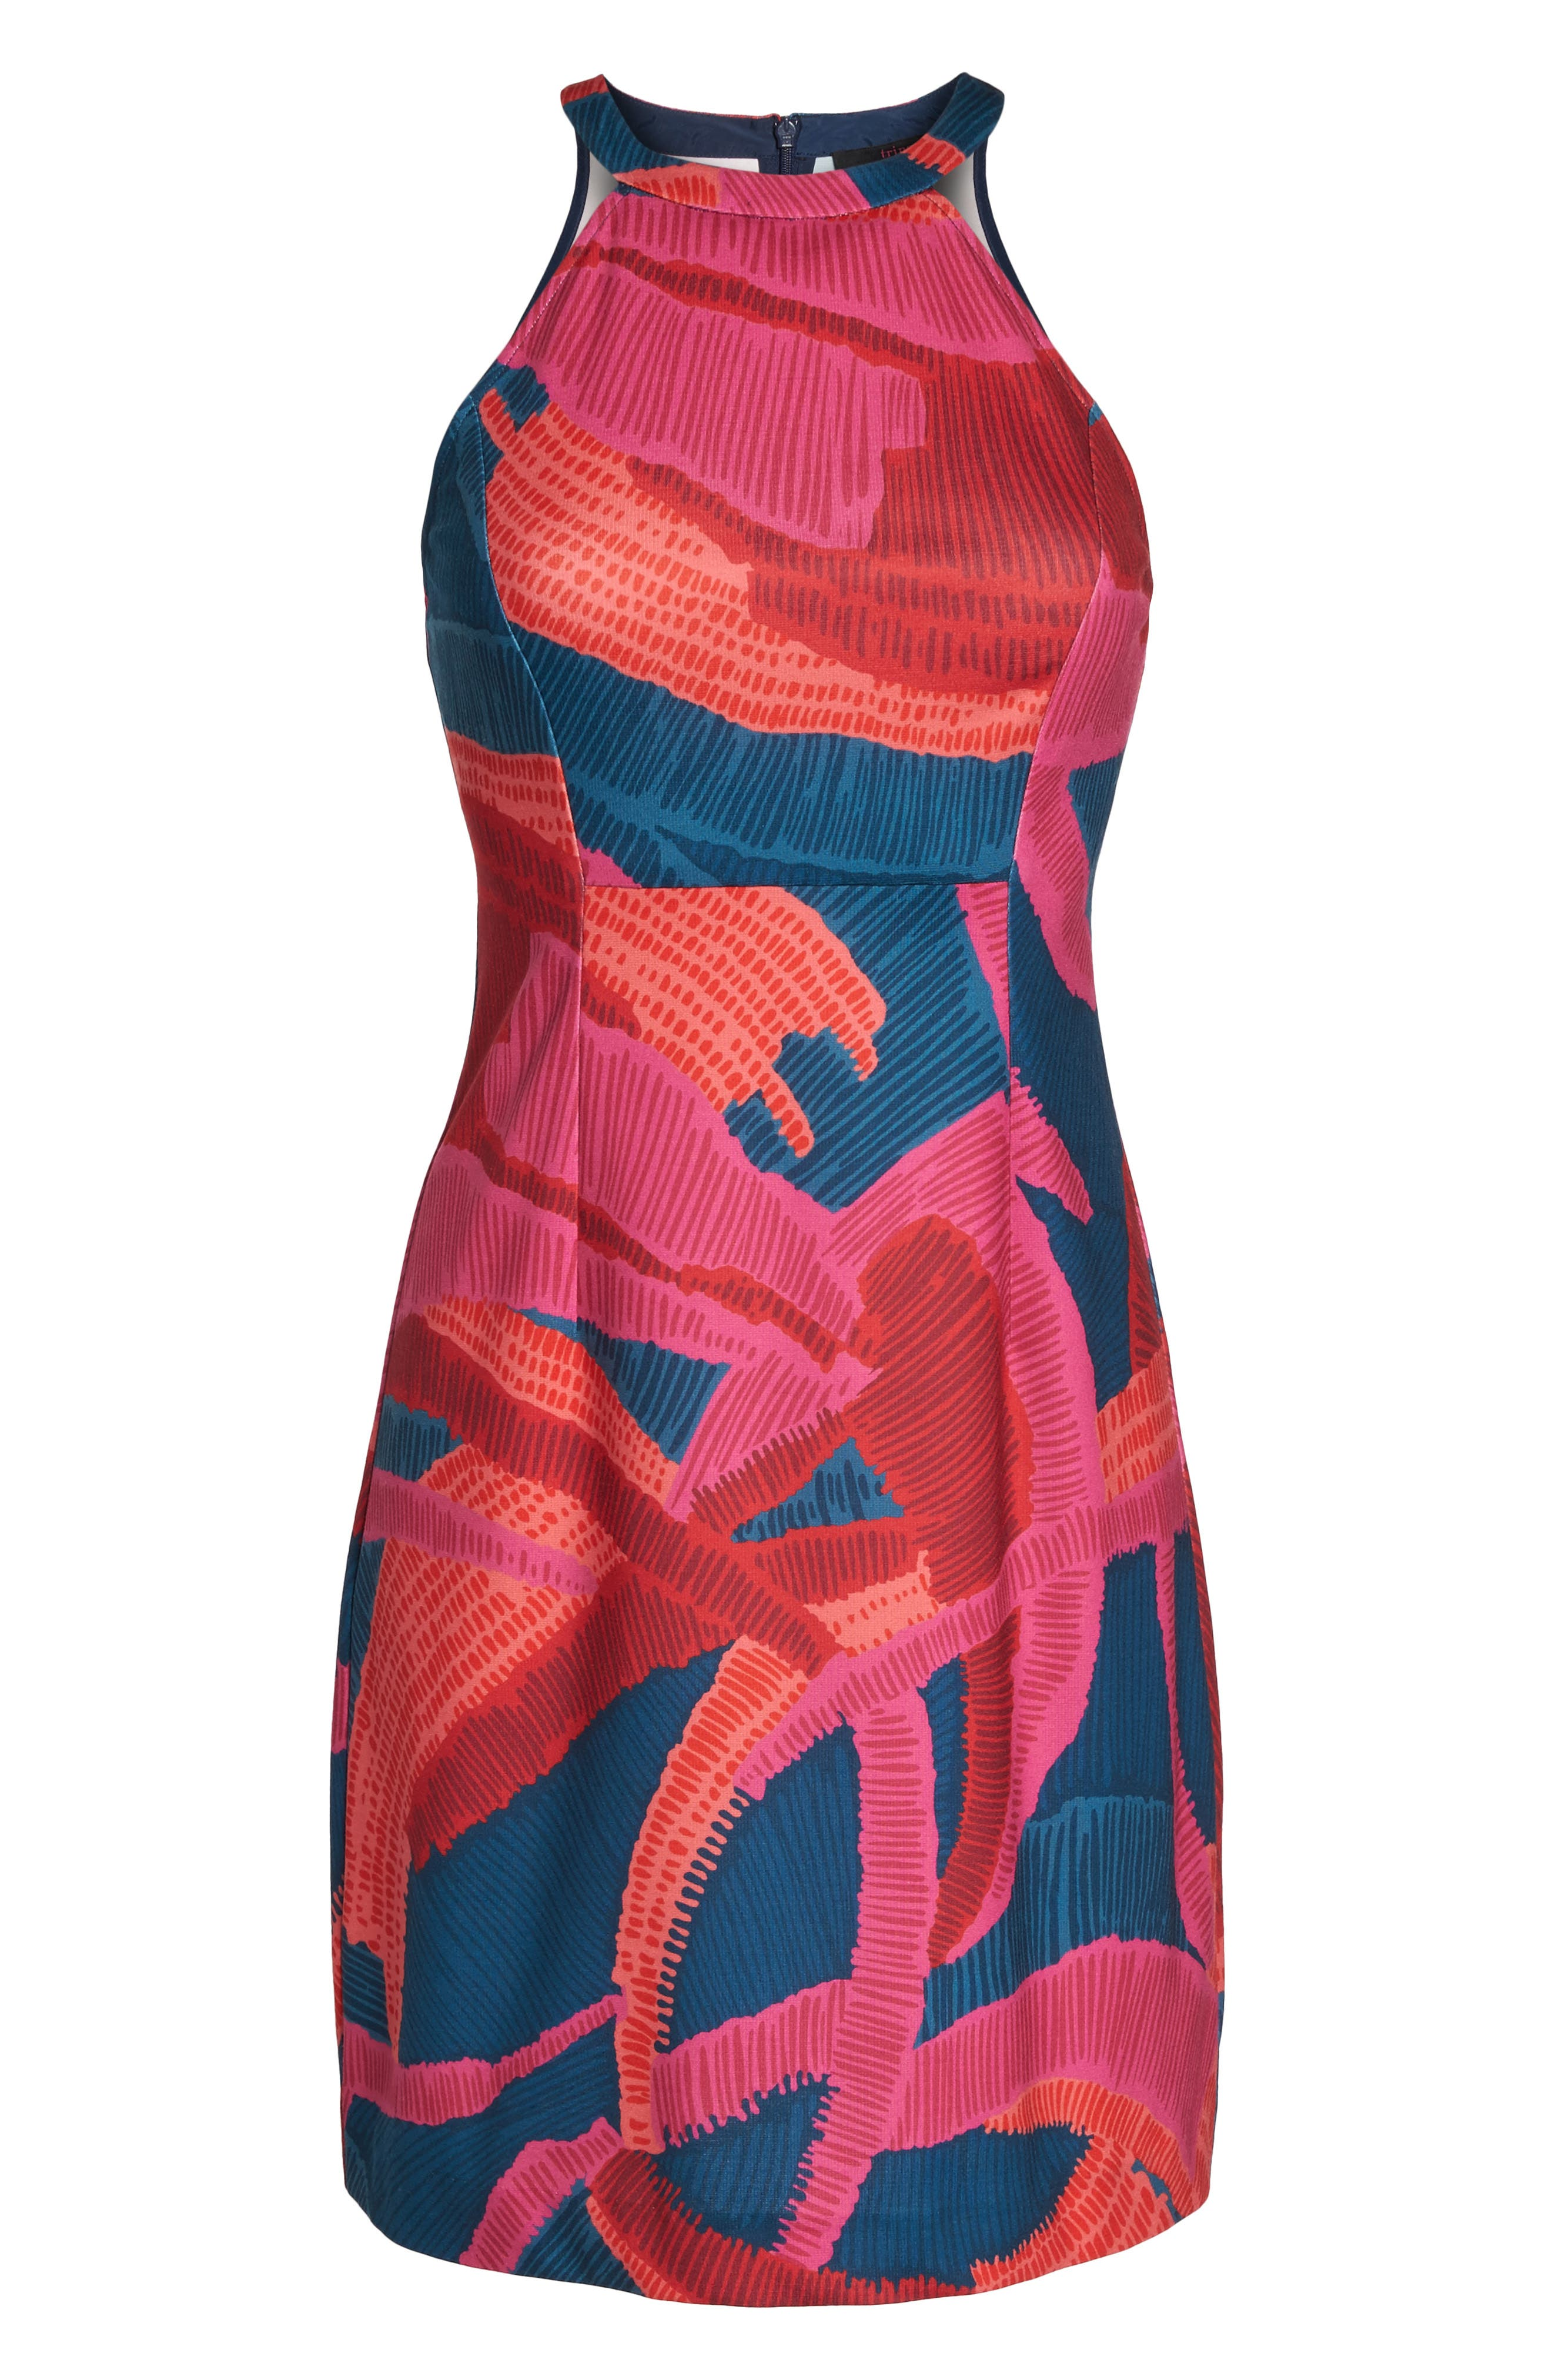 El Rapido Dress,                             Alternate thumbnail 6, color,                             Multi